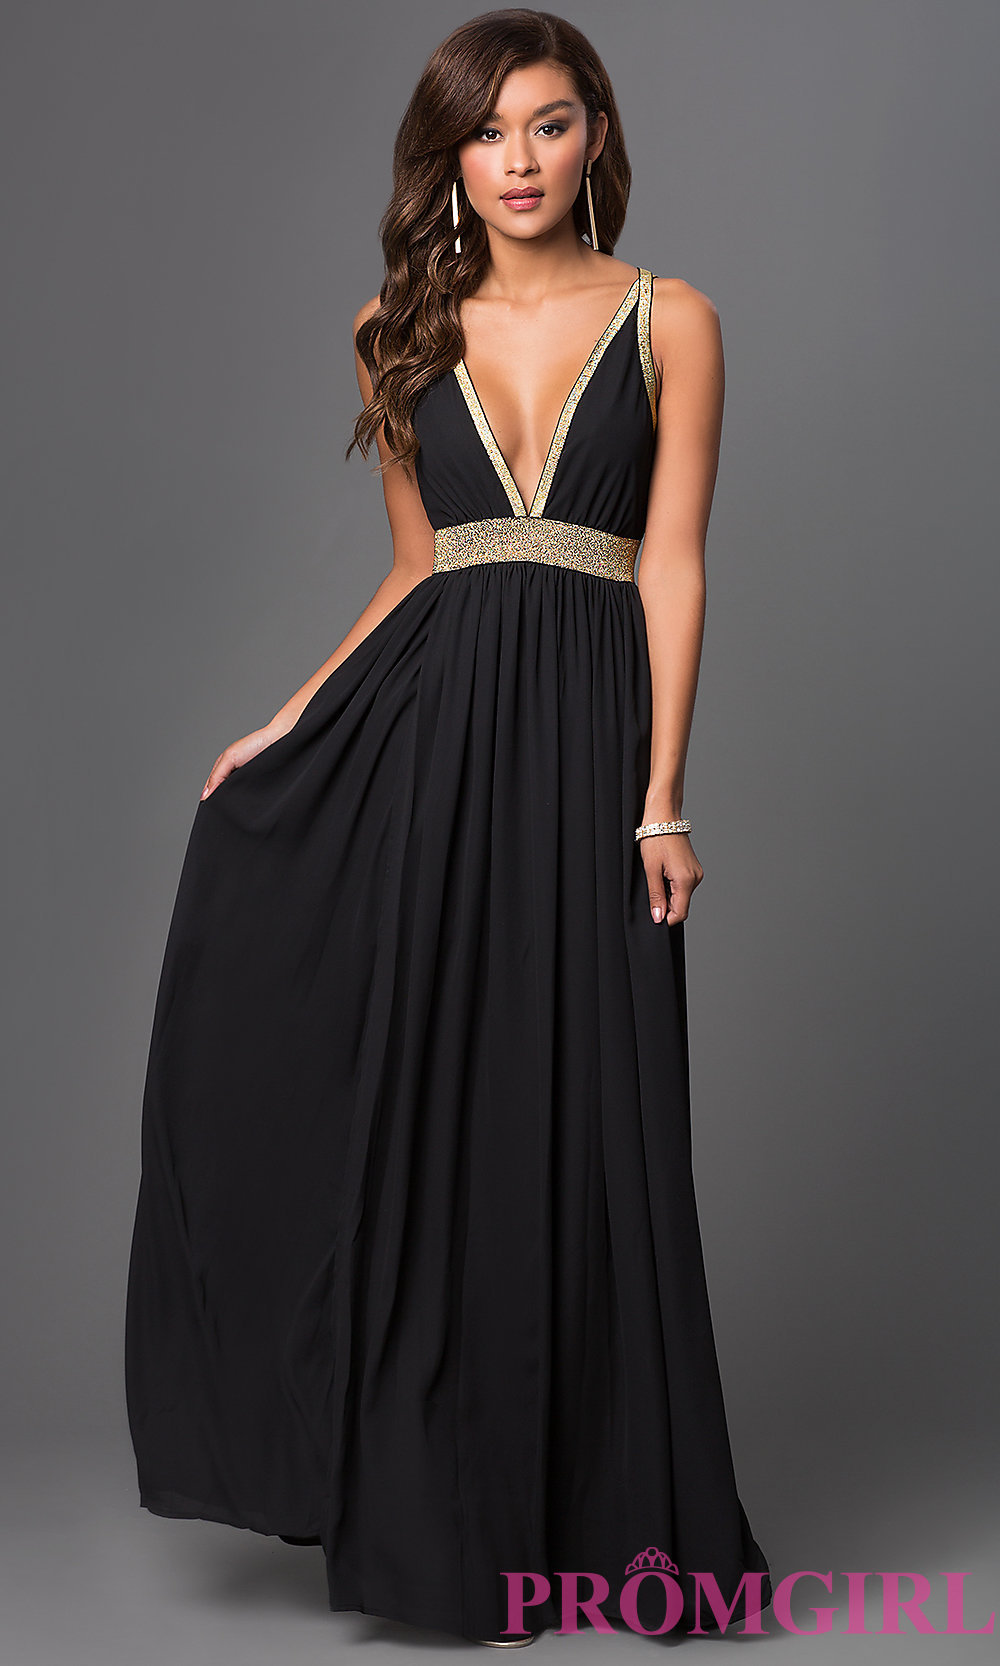 long dresses loved! PTEIACR